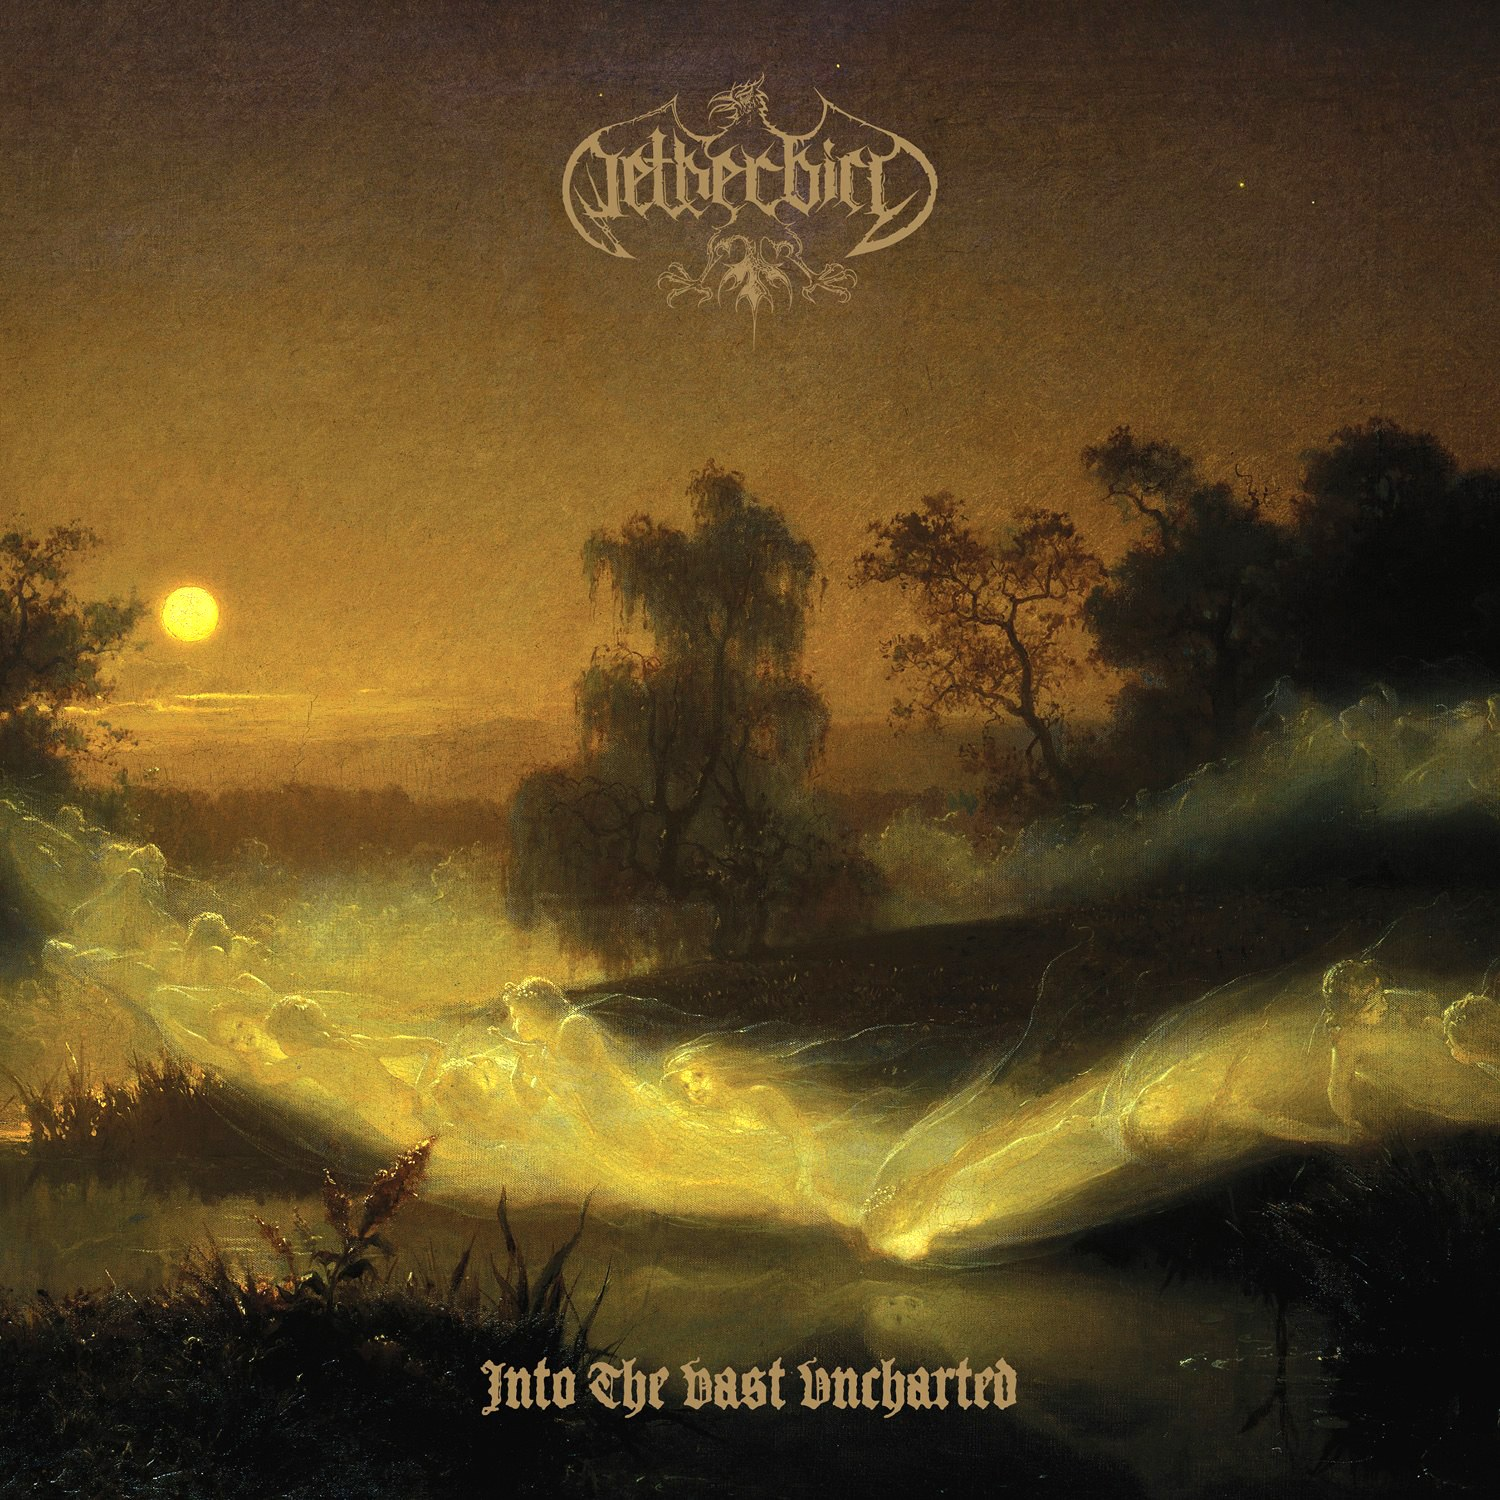 Reviews for Netherbird - Into the Vast Uncharted